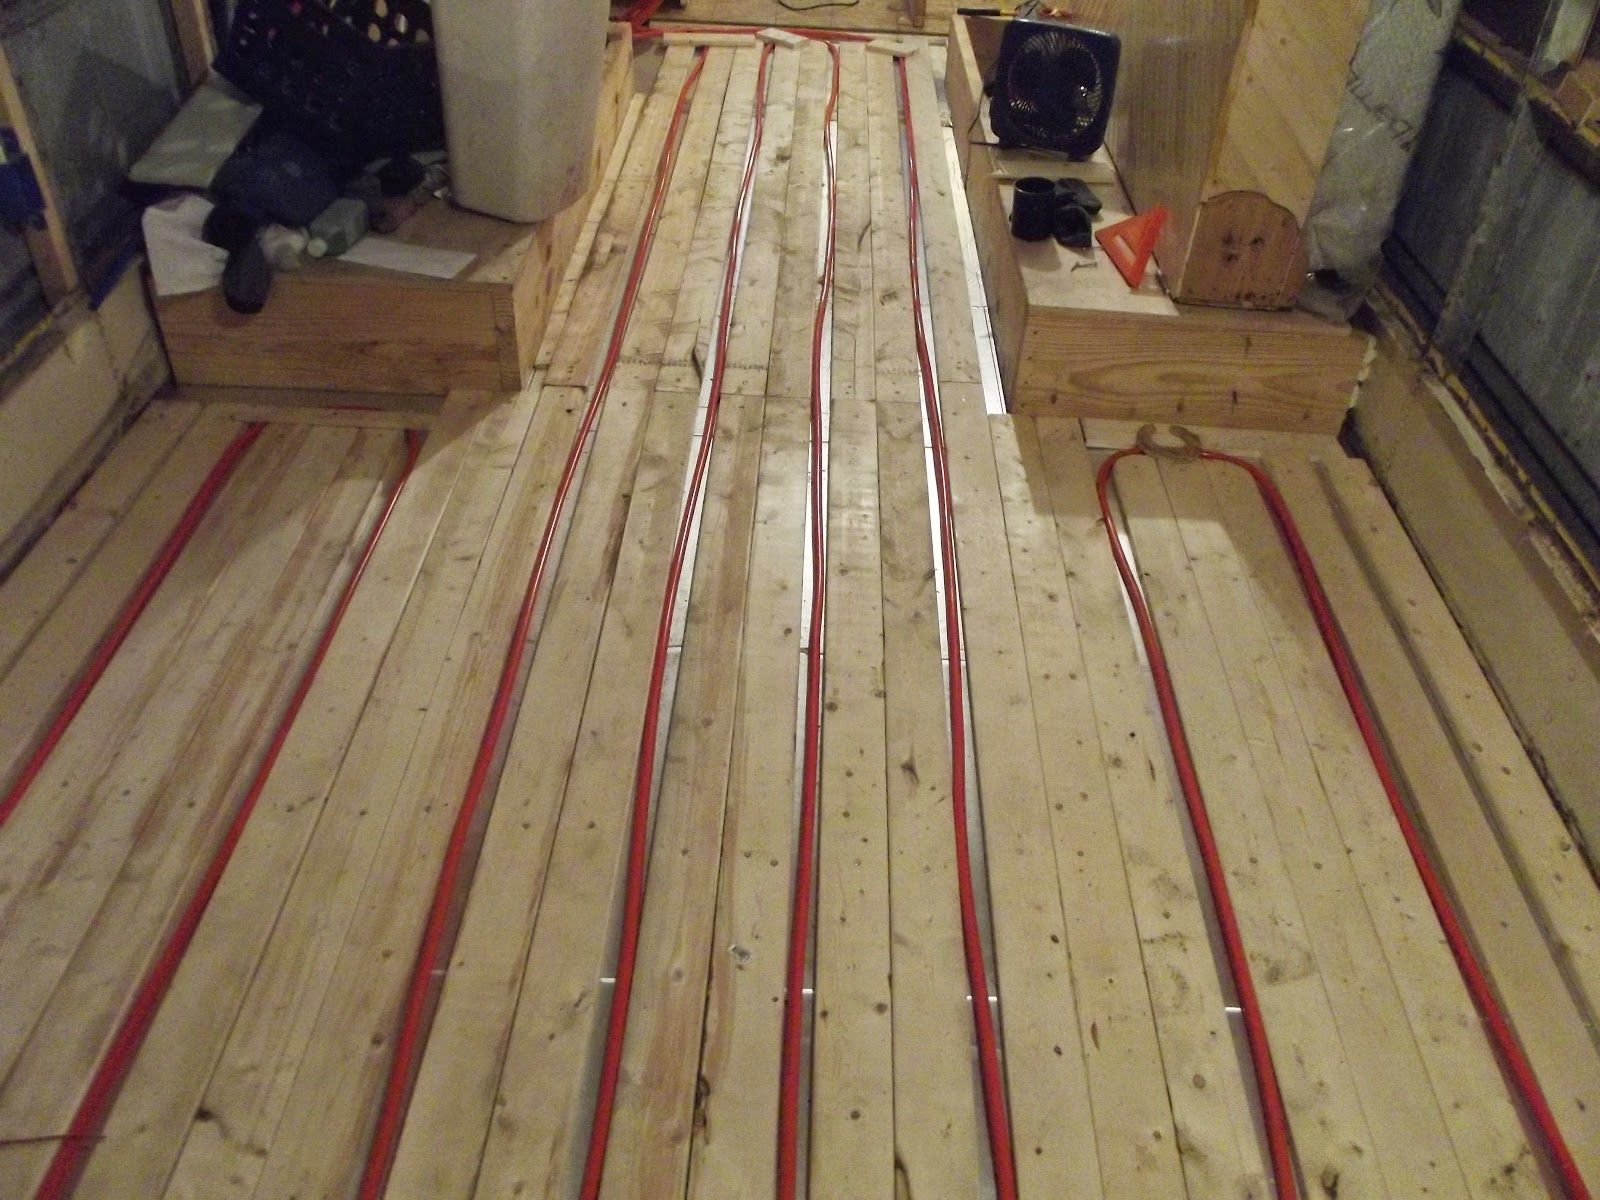 Radiant Floor Heating In A Converted Bus Pex Tubing And